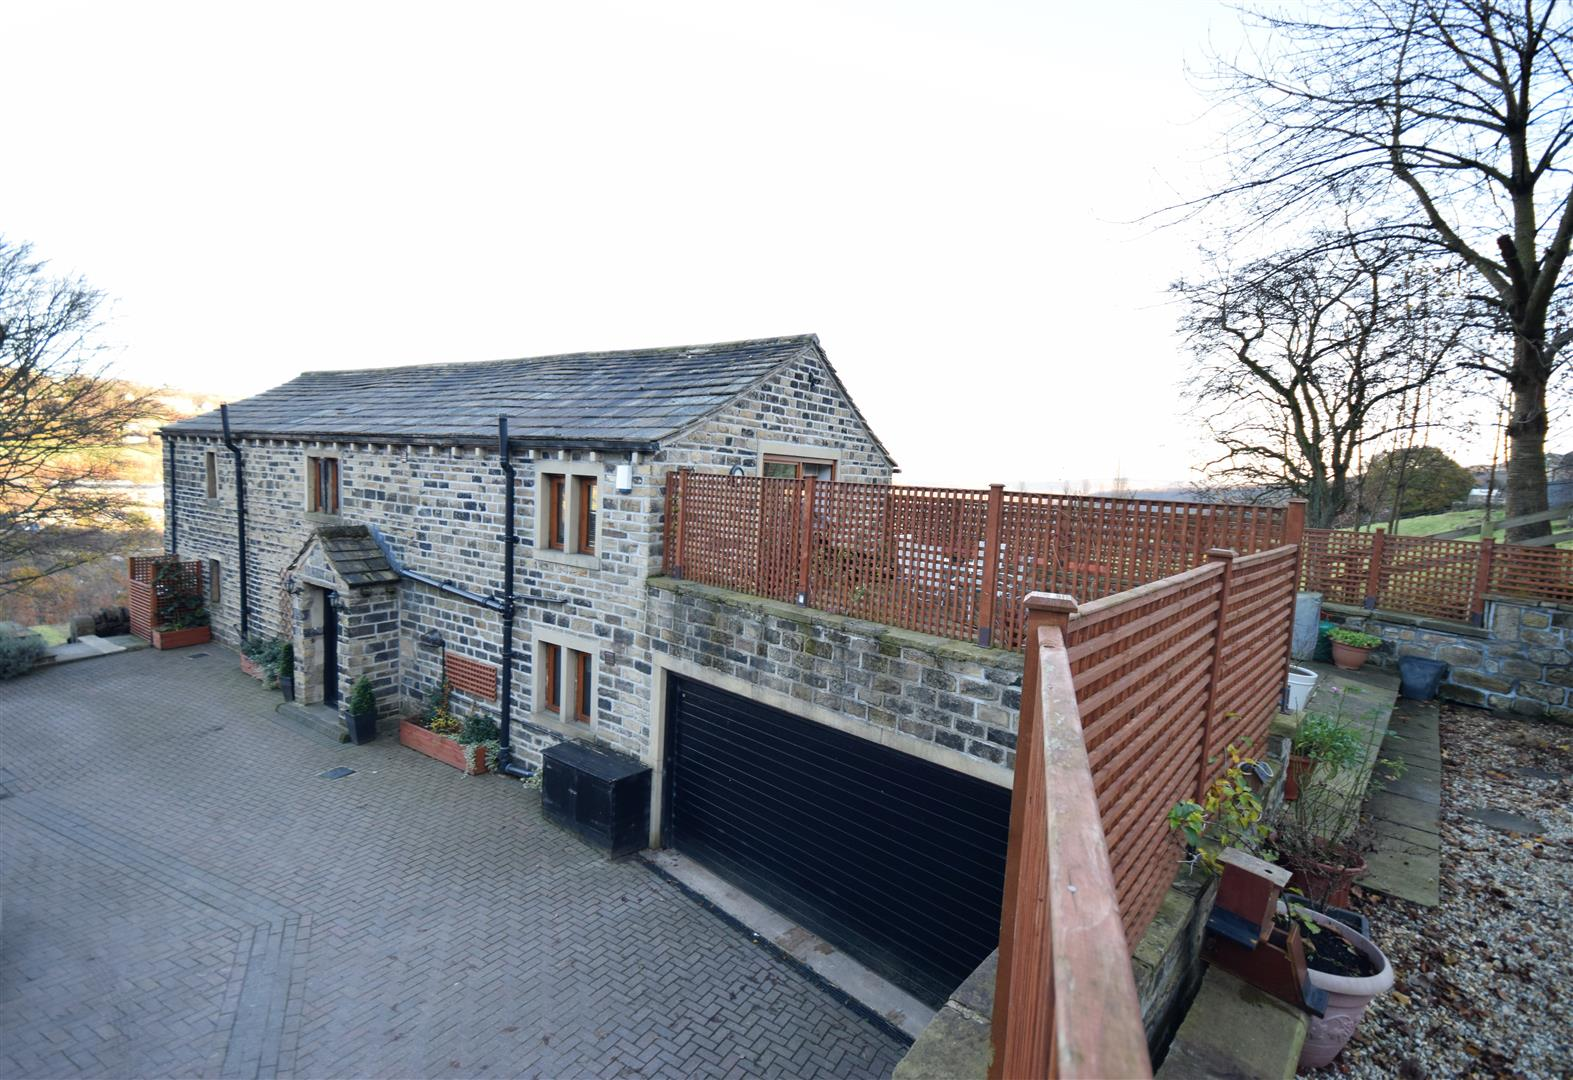 Milner Royd Cottage, Off London Road, Norland, Sowerby Bridge, HX6 3QY